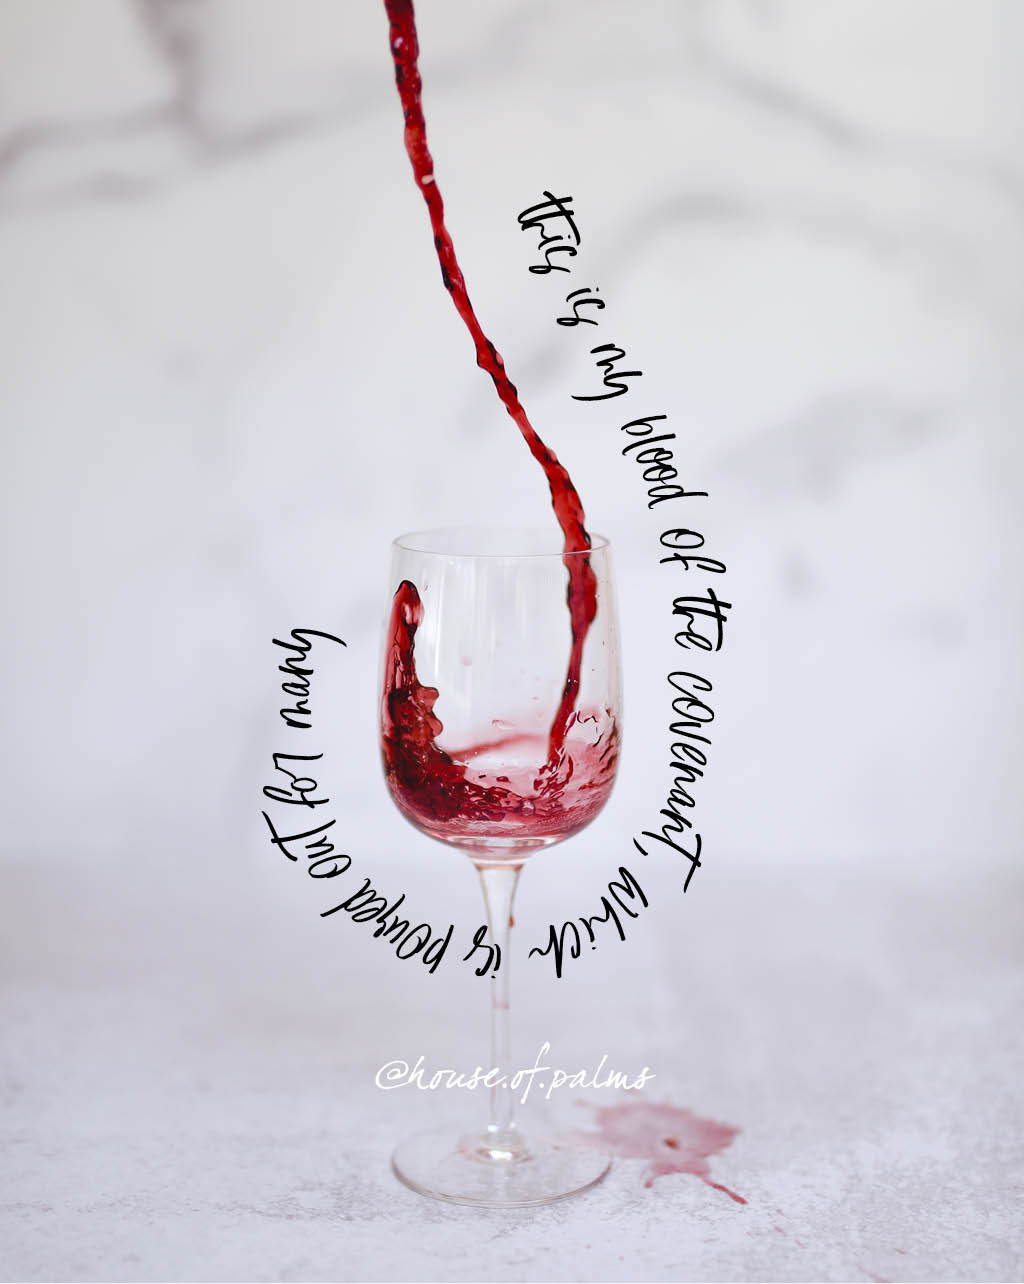 This is my blood poured out for many